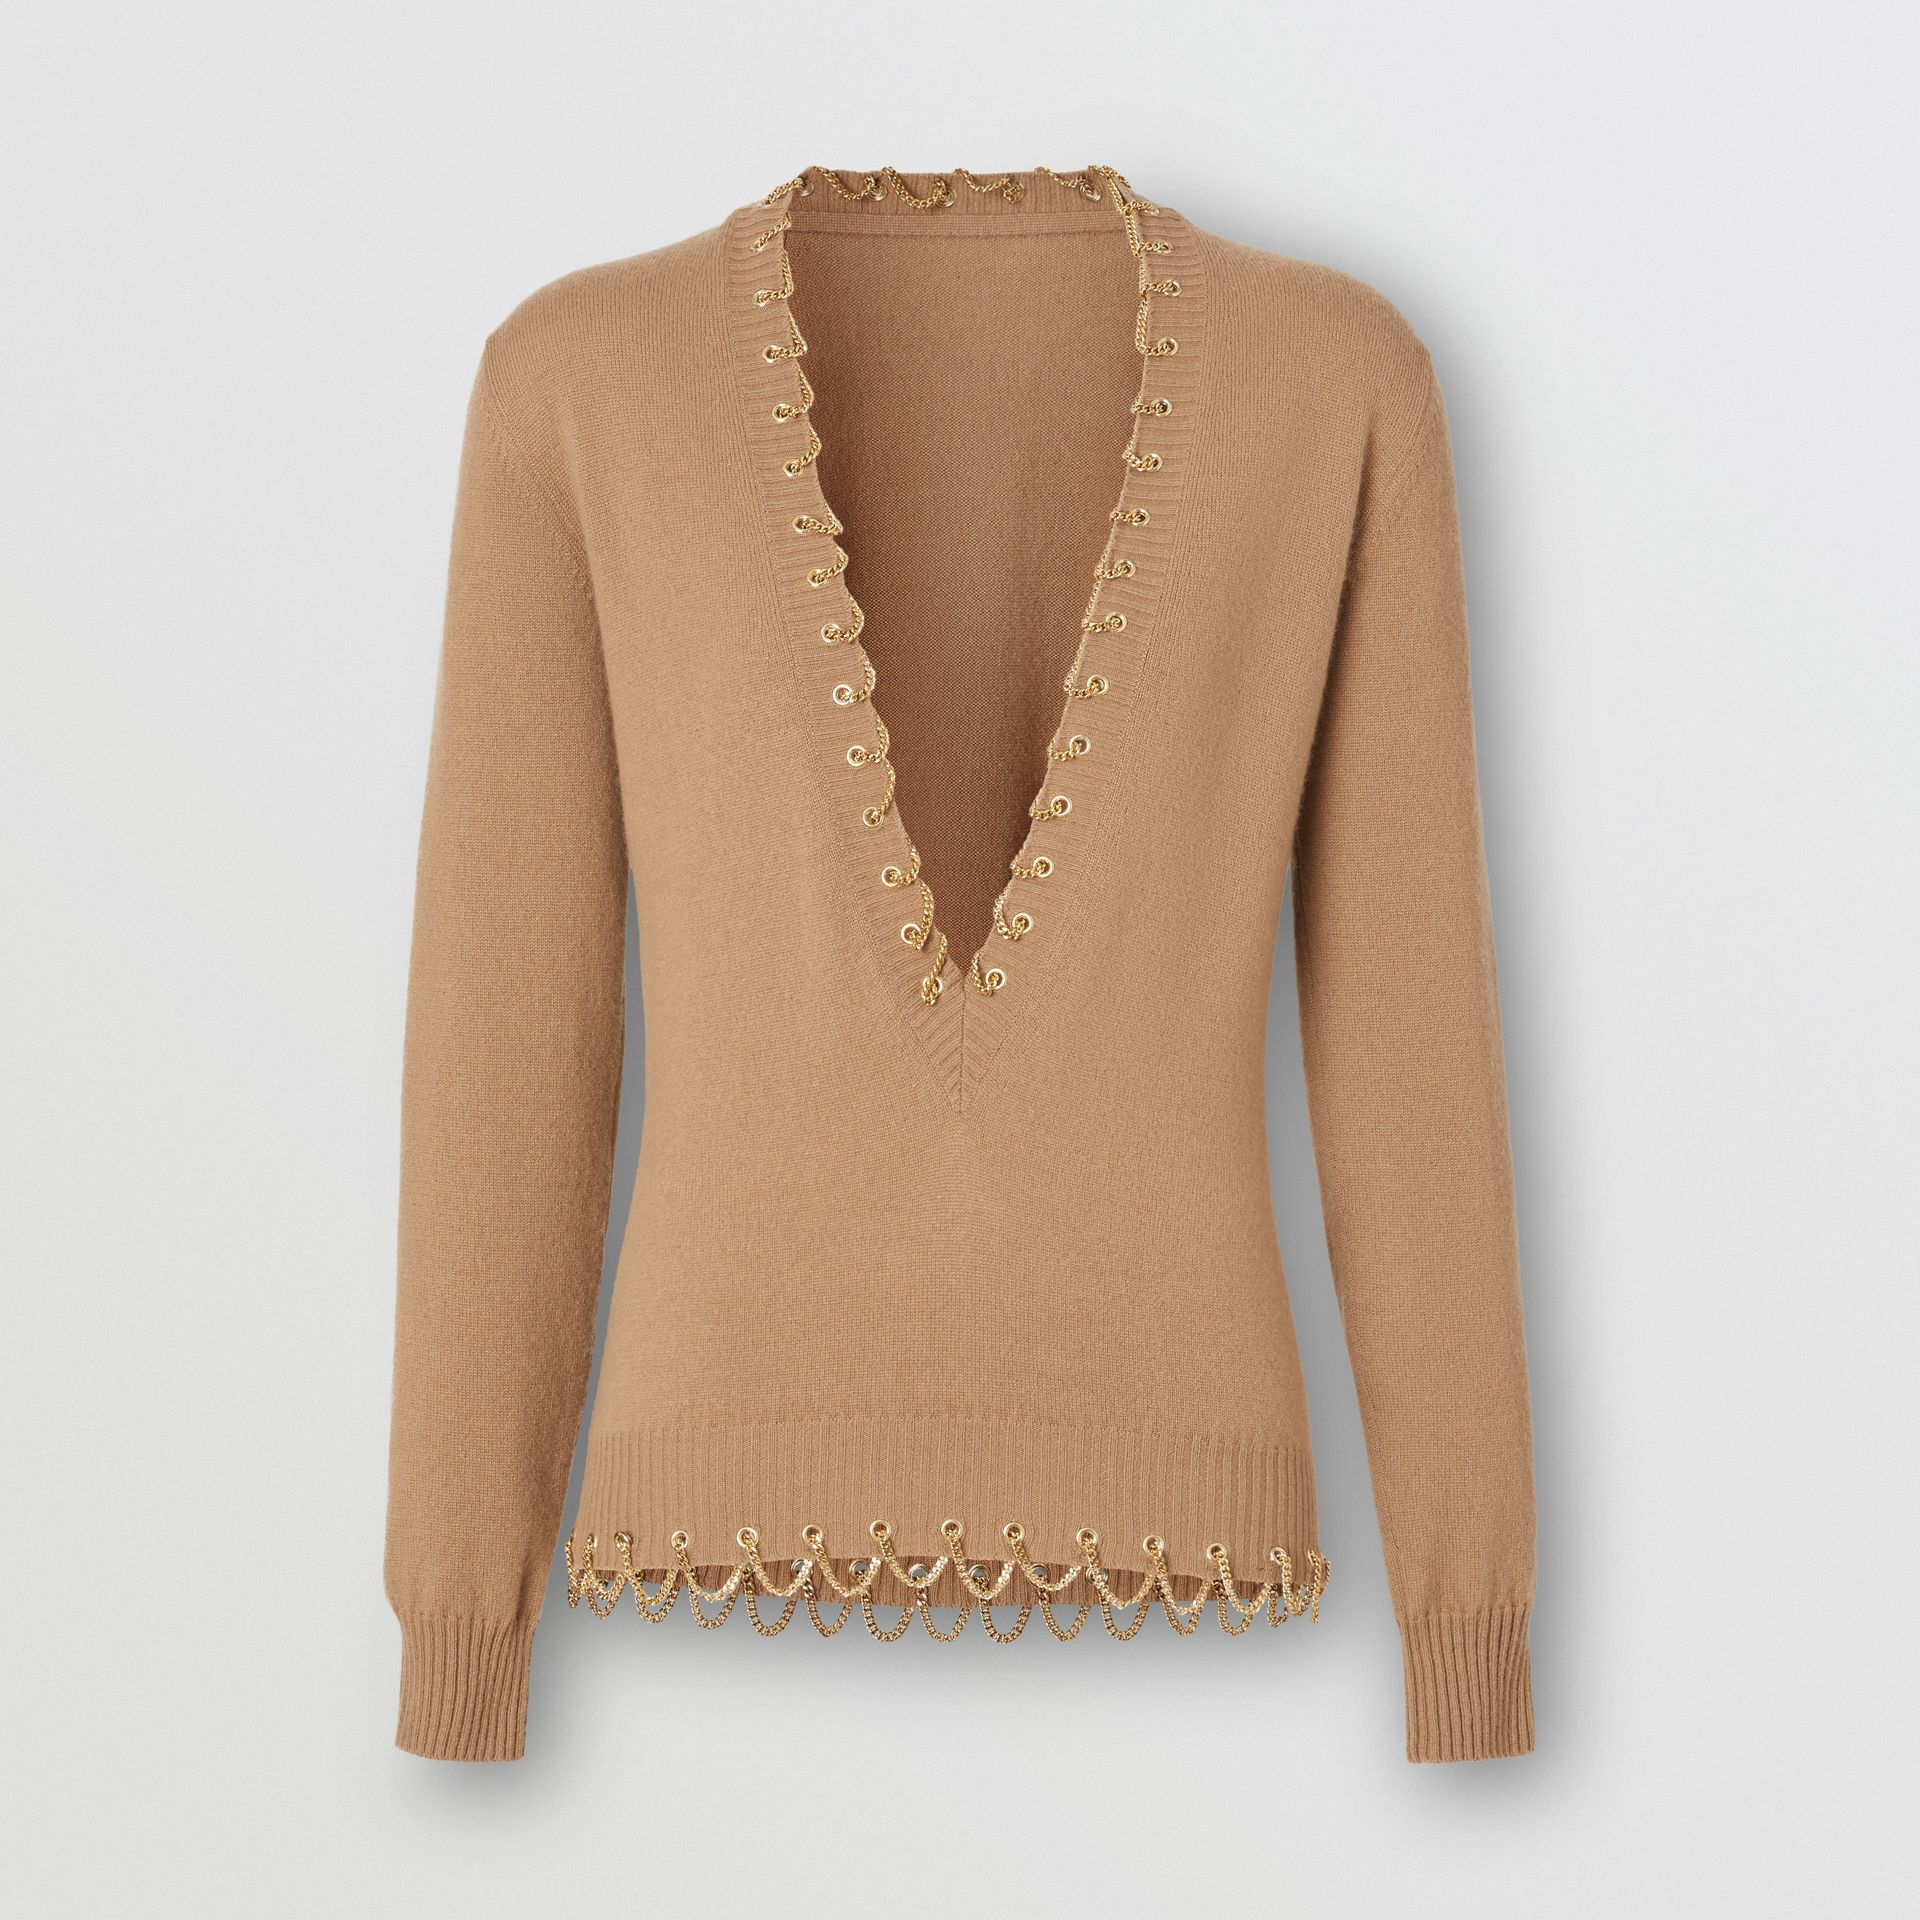 Chain Detail Cashmere Sweater in Camel - Women | Burberry - gallery image 3